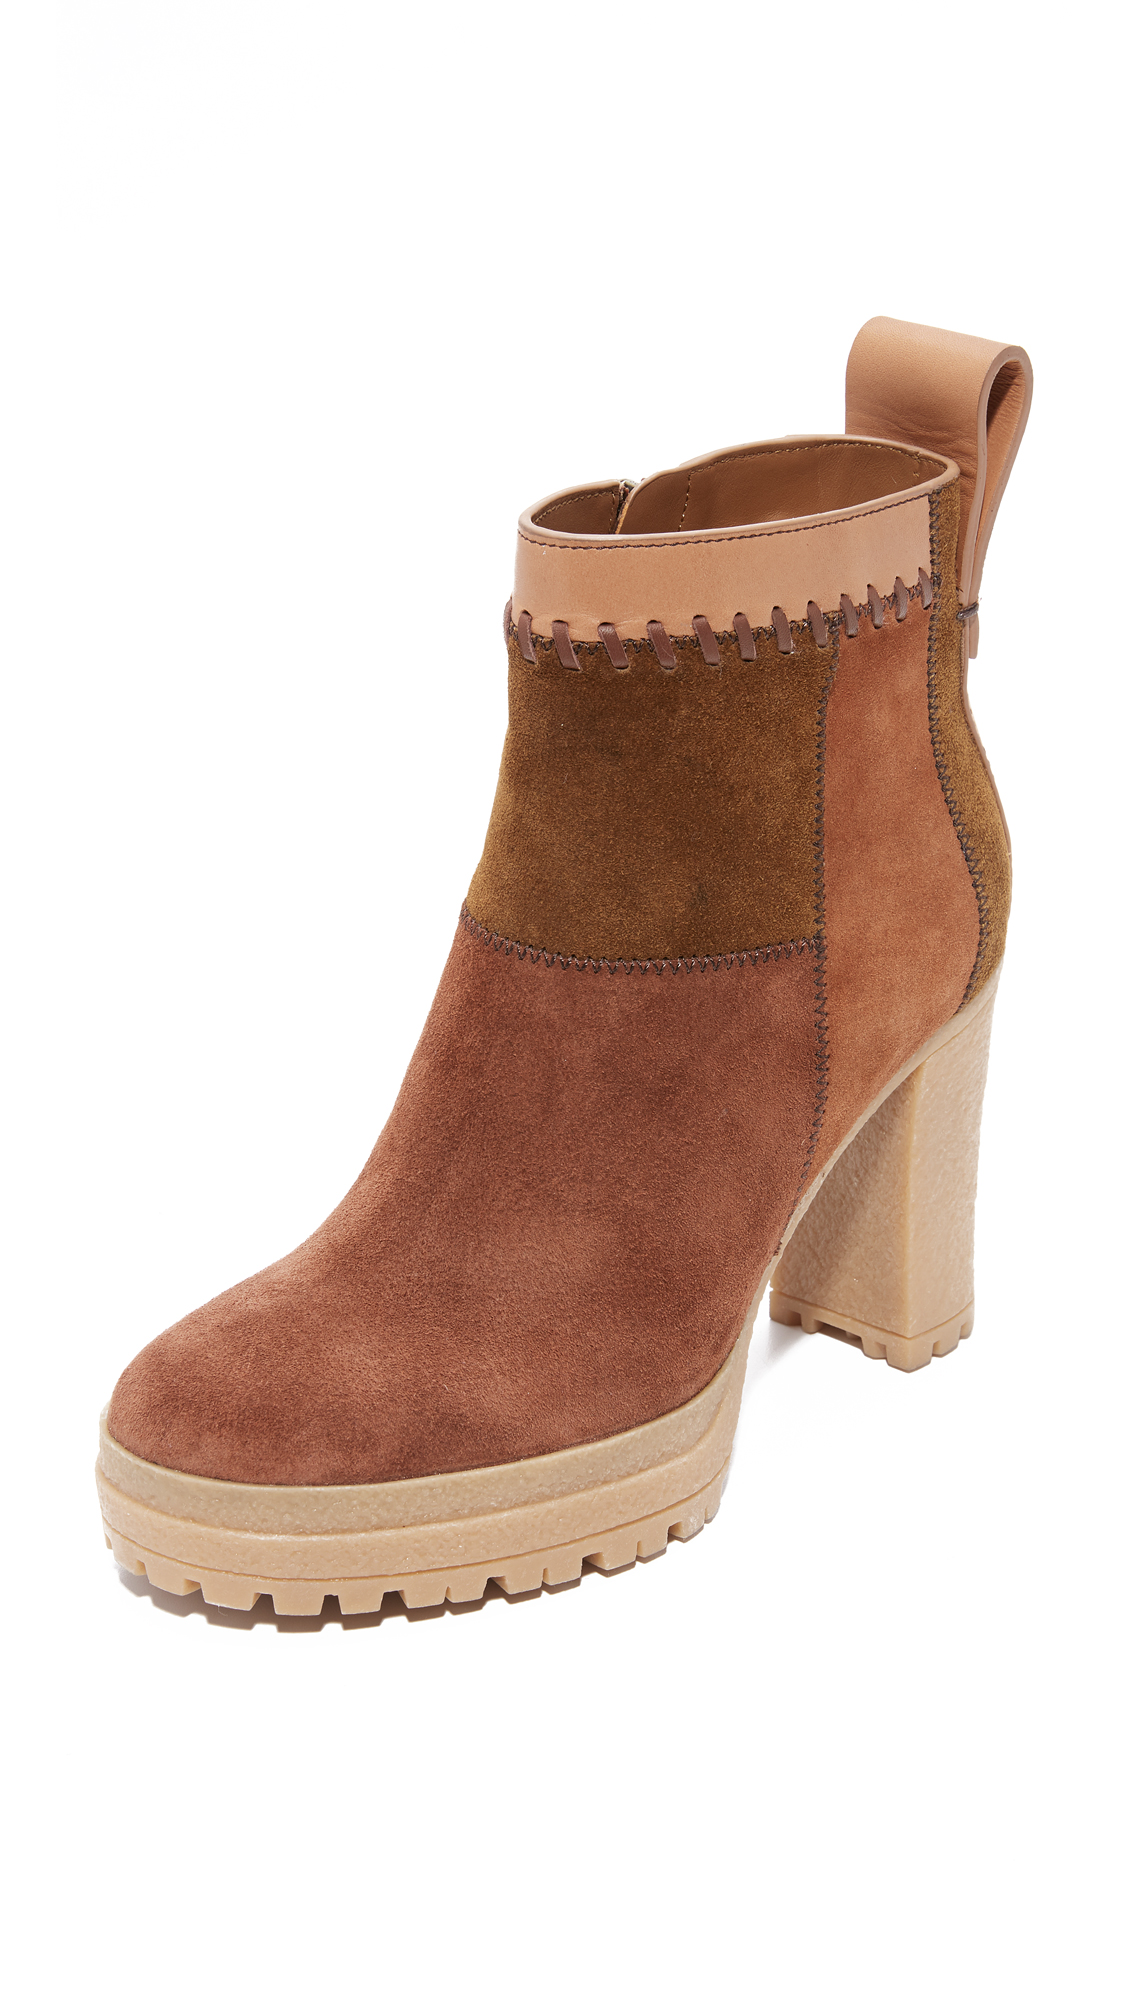 See by Chloe Polina Patchwork Booties - Natural